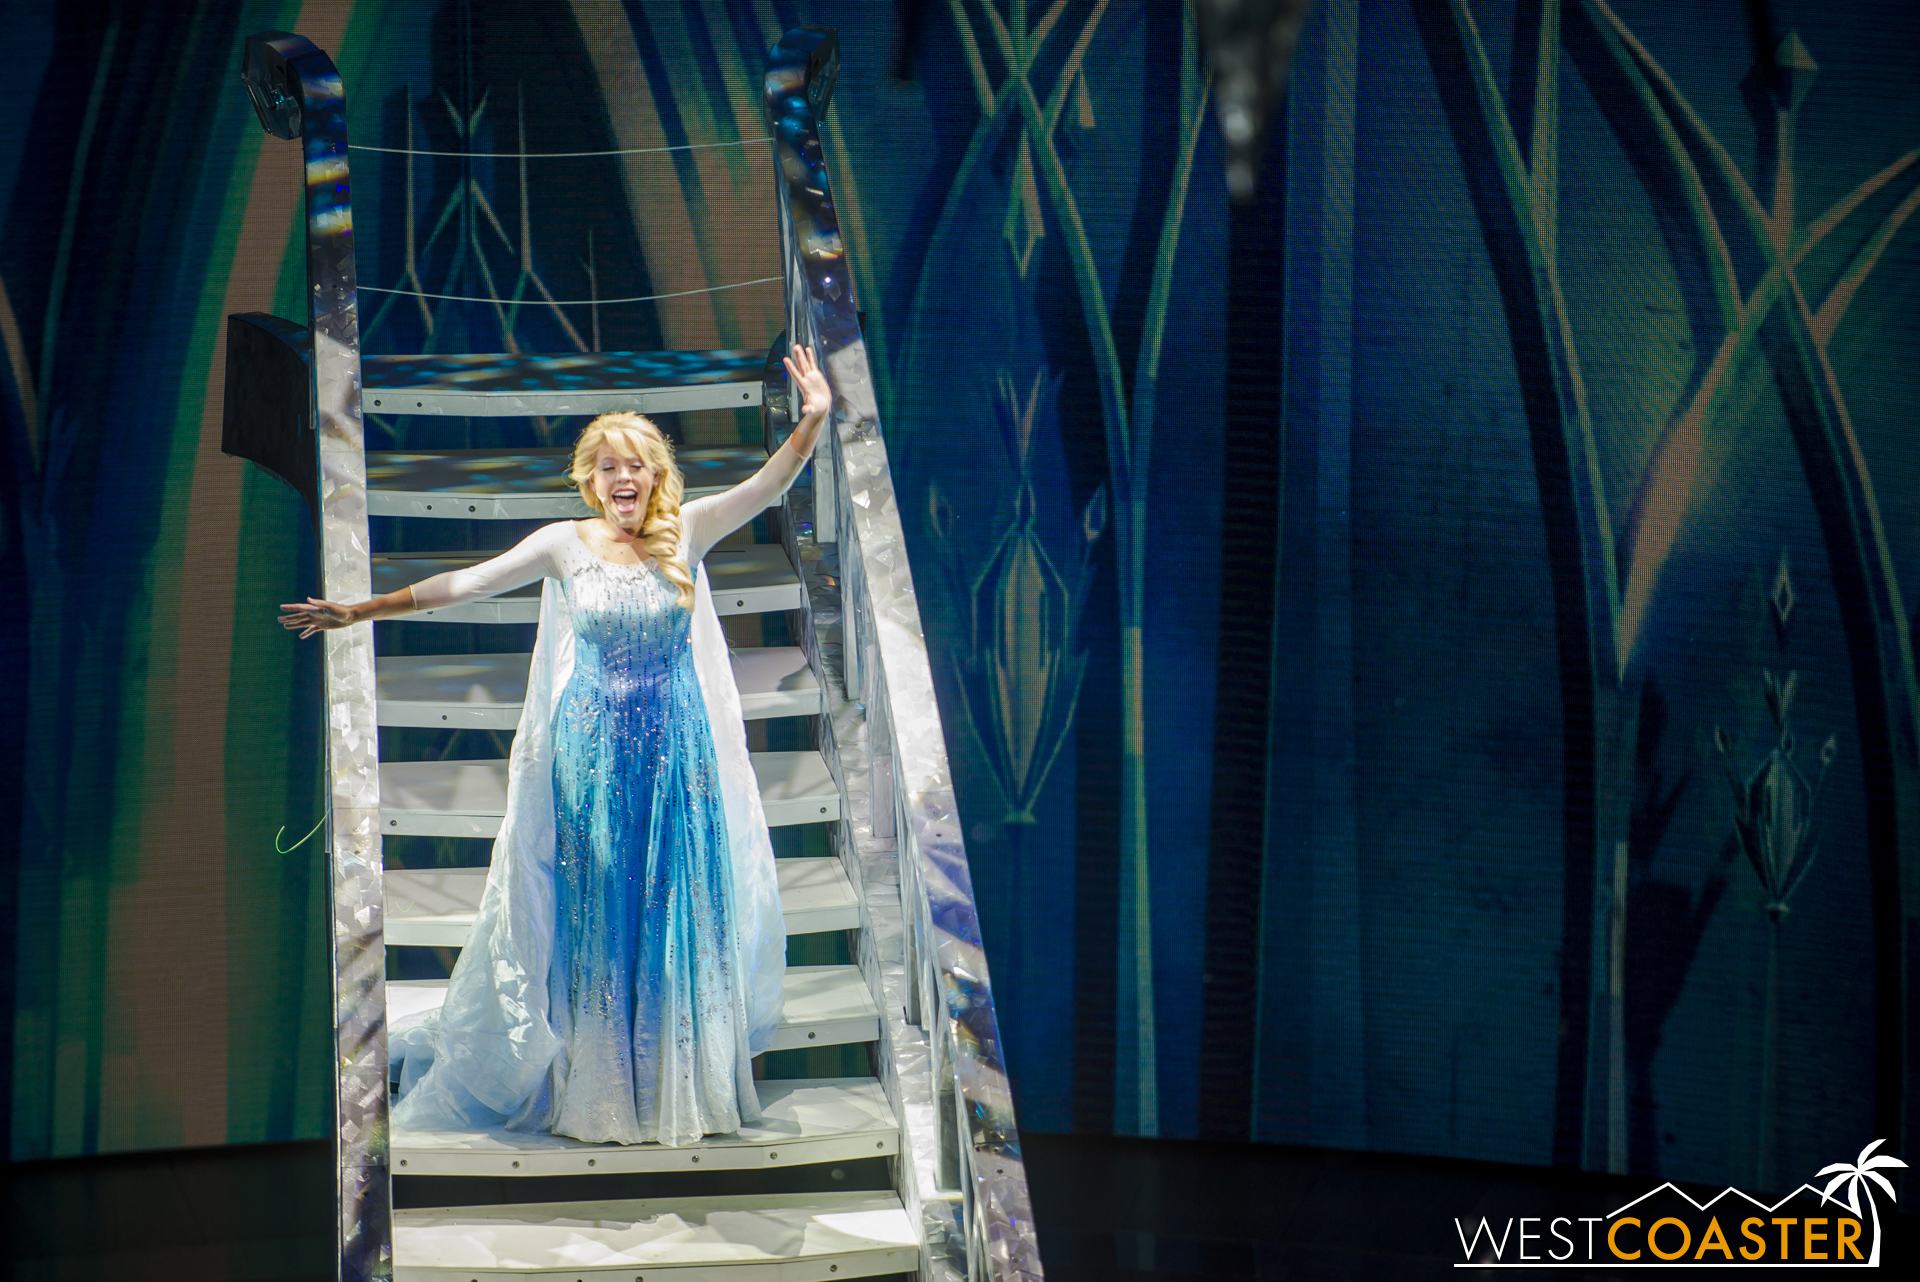 The zombifying never bothered her anyway.